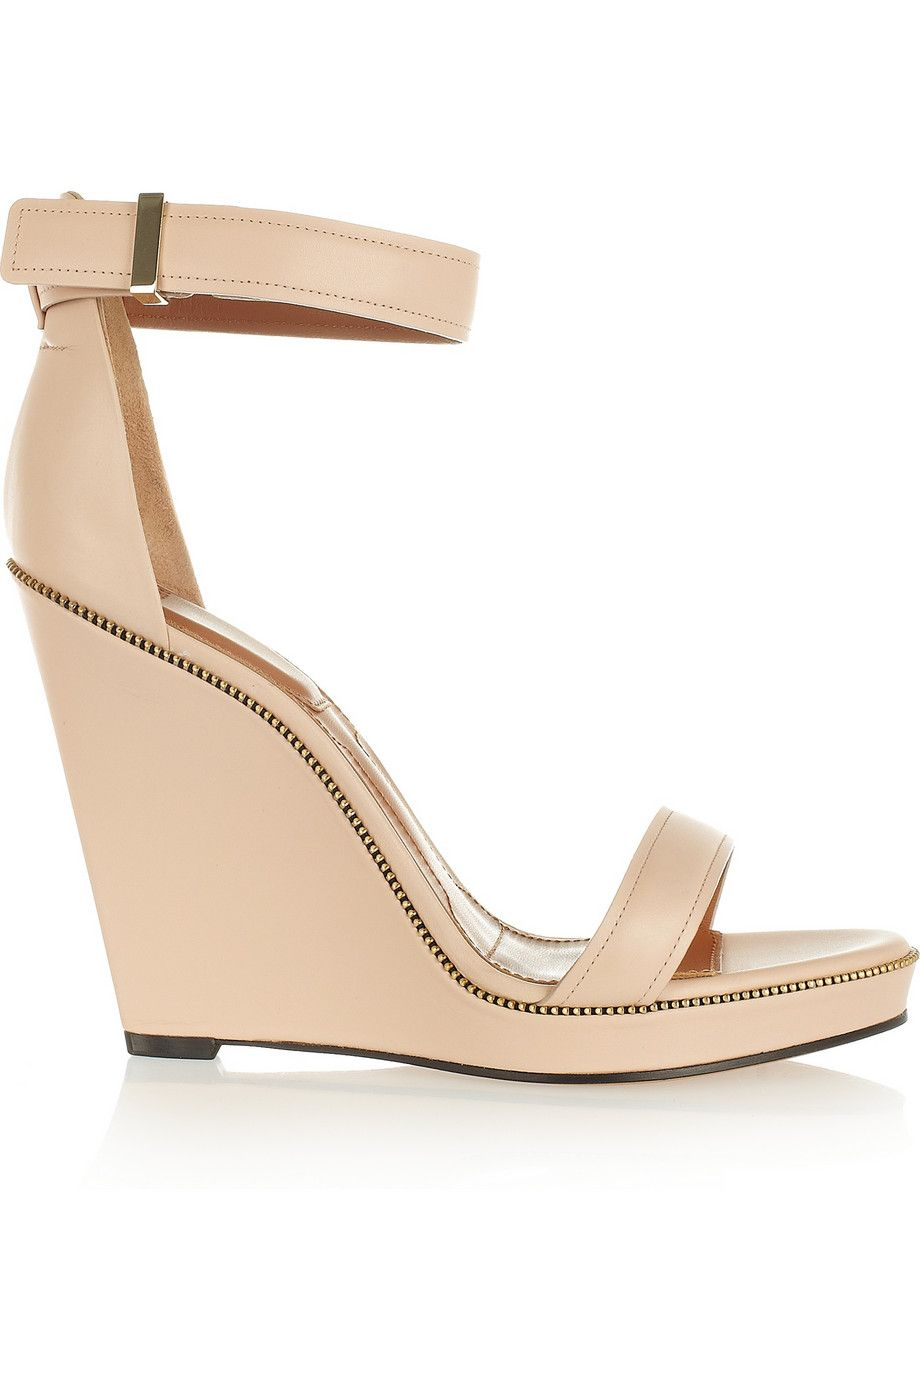 Givenchy Zip-detailed leather wedge sandals NET-A-PORTER.COM